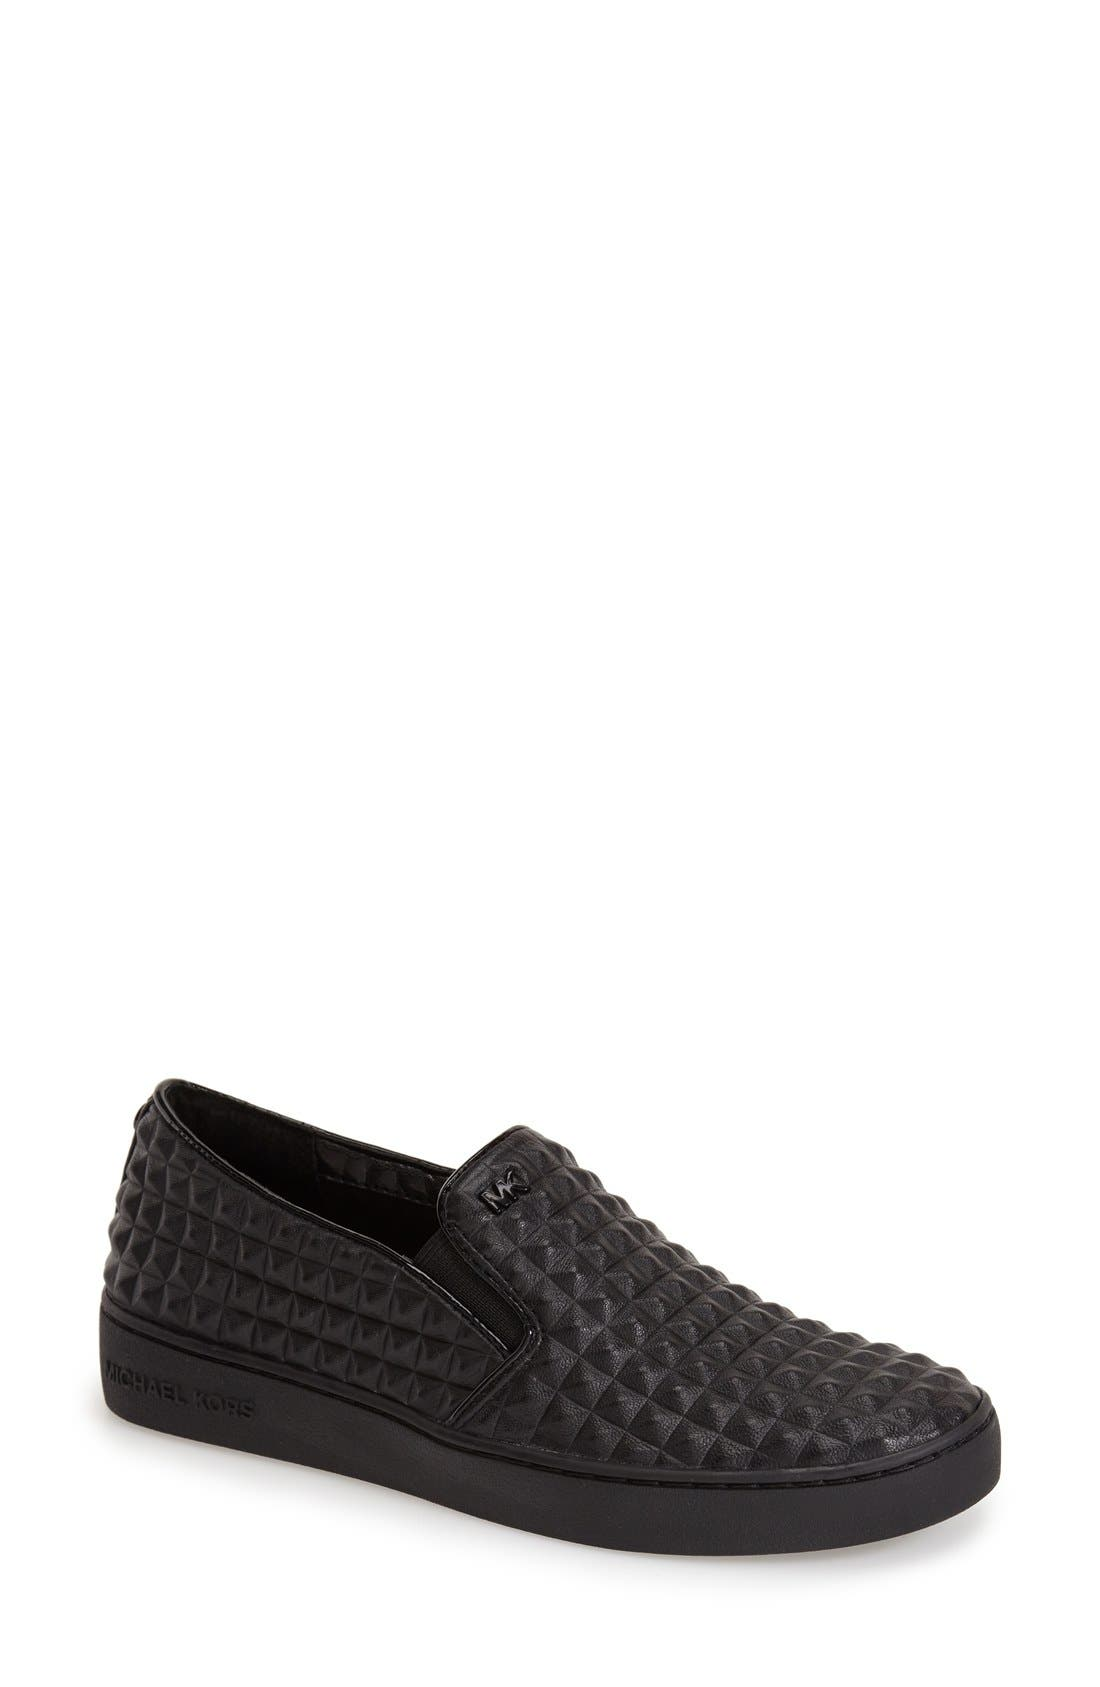 Main Image - MICHAEL Michael Kors 'Pratt' Studded Slip-On Sneaker (Women)